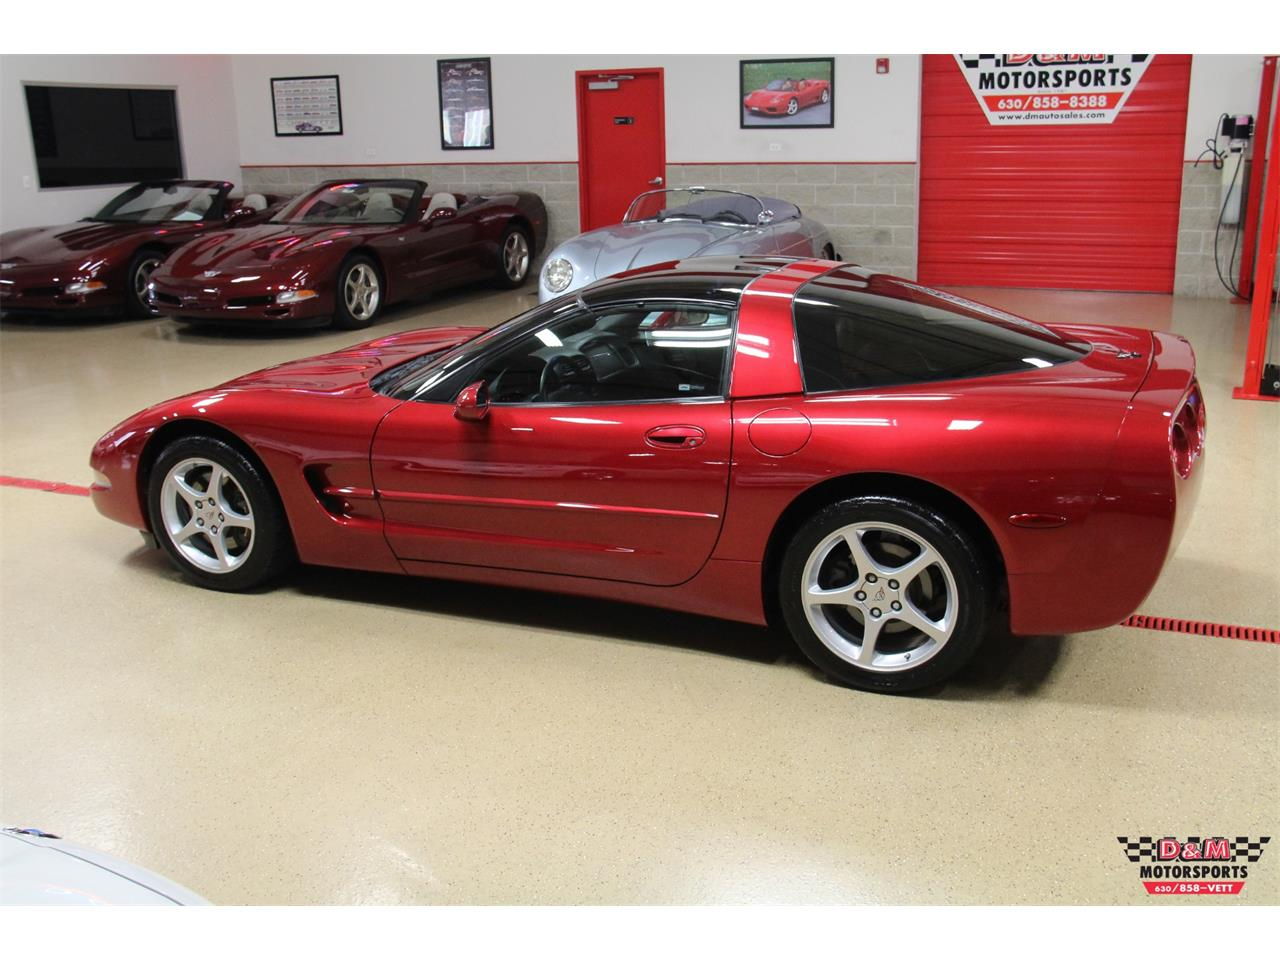 Large Picture of '00 Corvette located in Glen Ellyn Illinois - $15,995.00 Offered by D & M Motorsports - LVA3